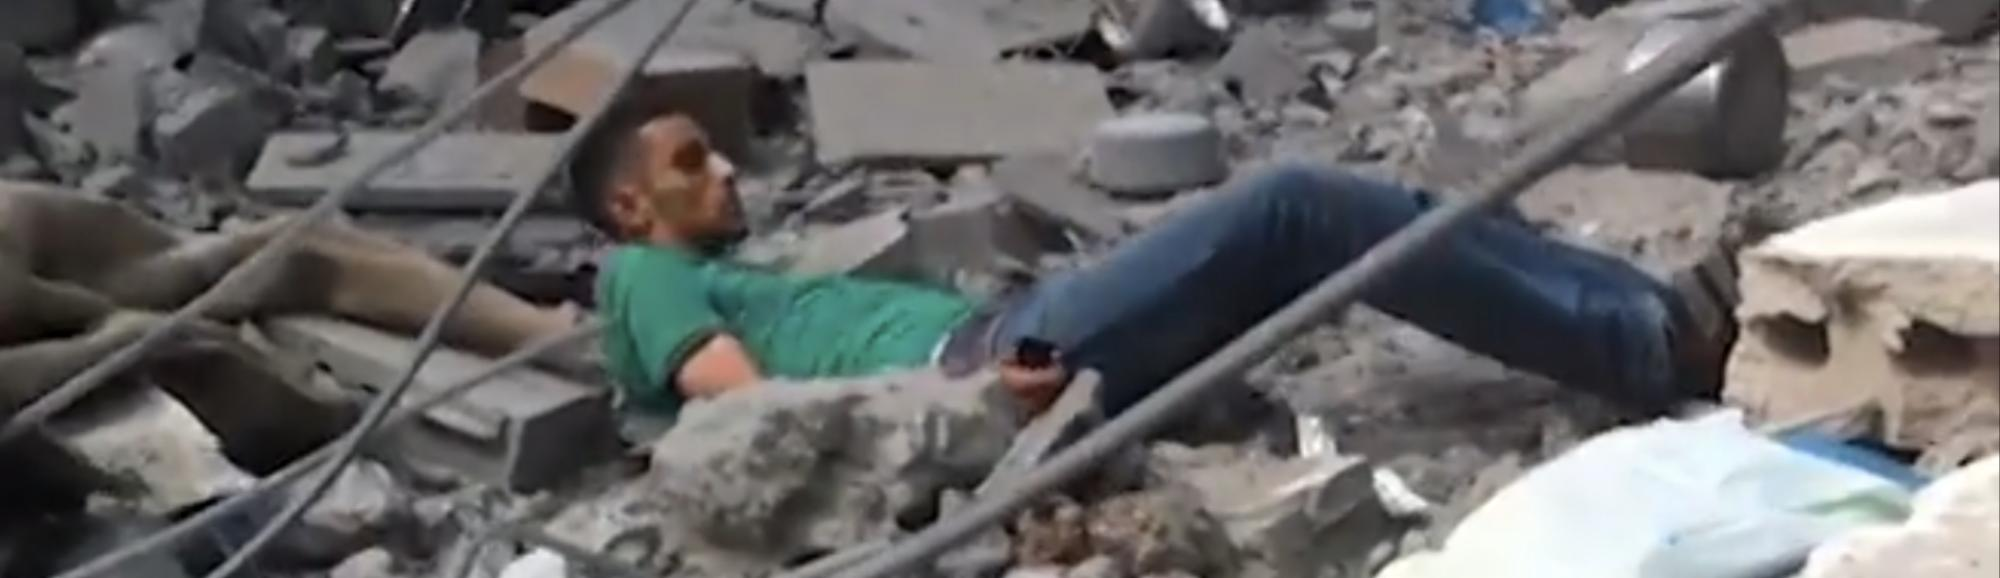 Cellphone Video Captures Gaza Civilian Reportedly Shot and Killed by Sniper